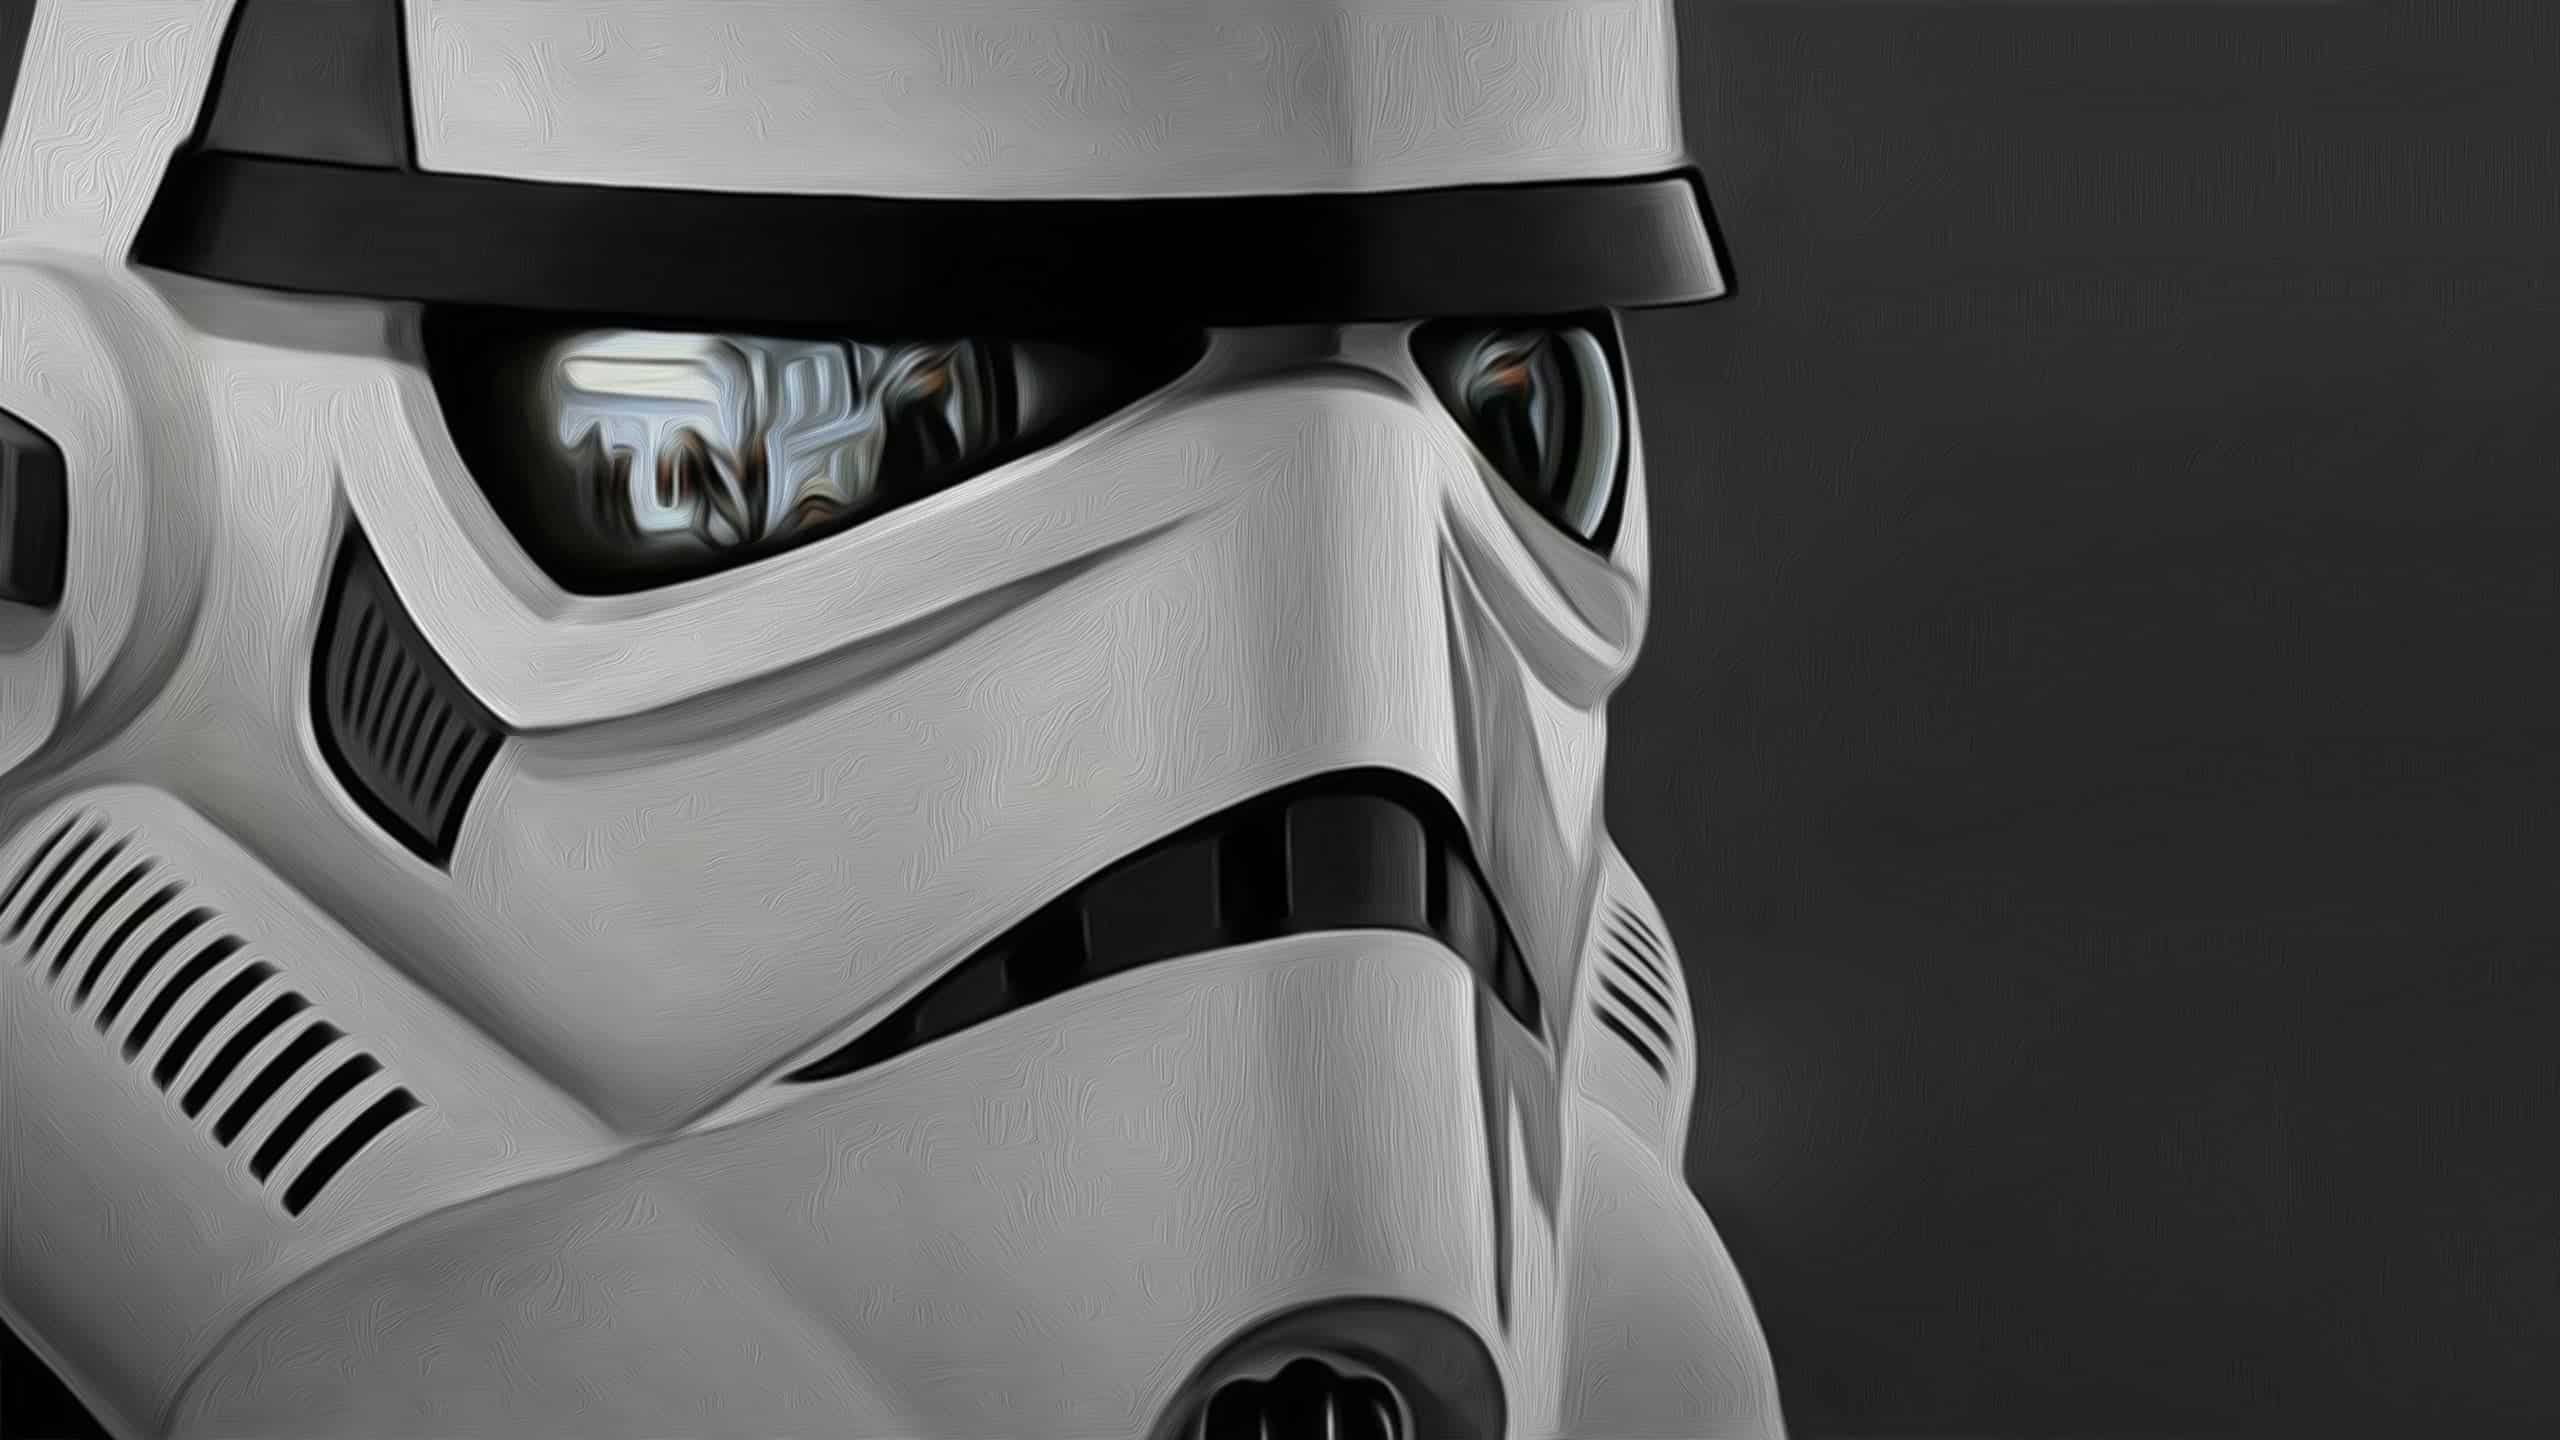 Star Wars Clone Trooper Wqhd 1440p Wallpaper 2560x1440 Wallpaper Teahub Io